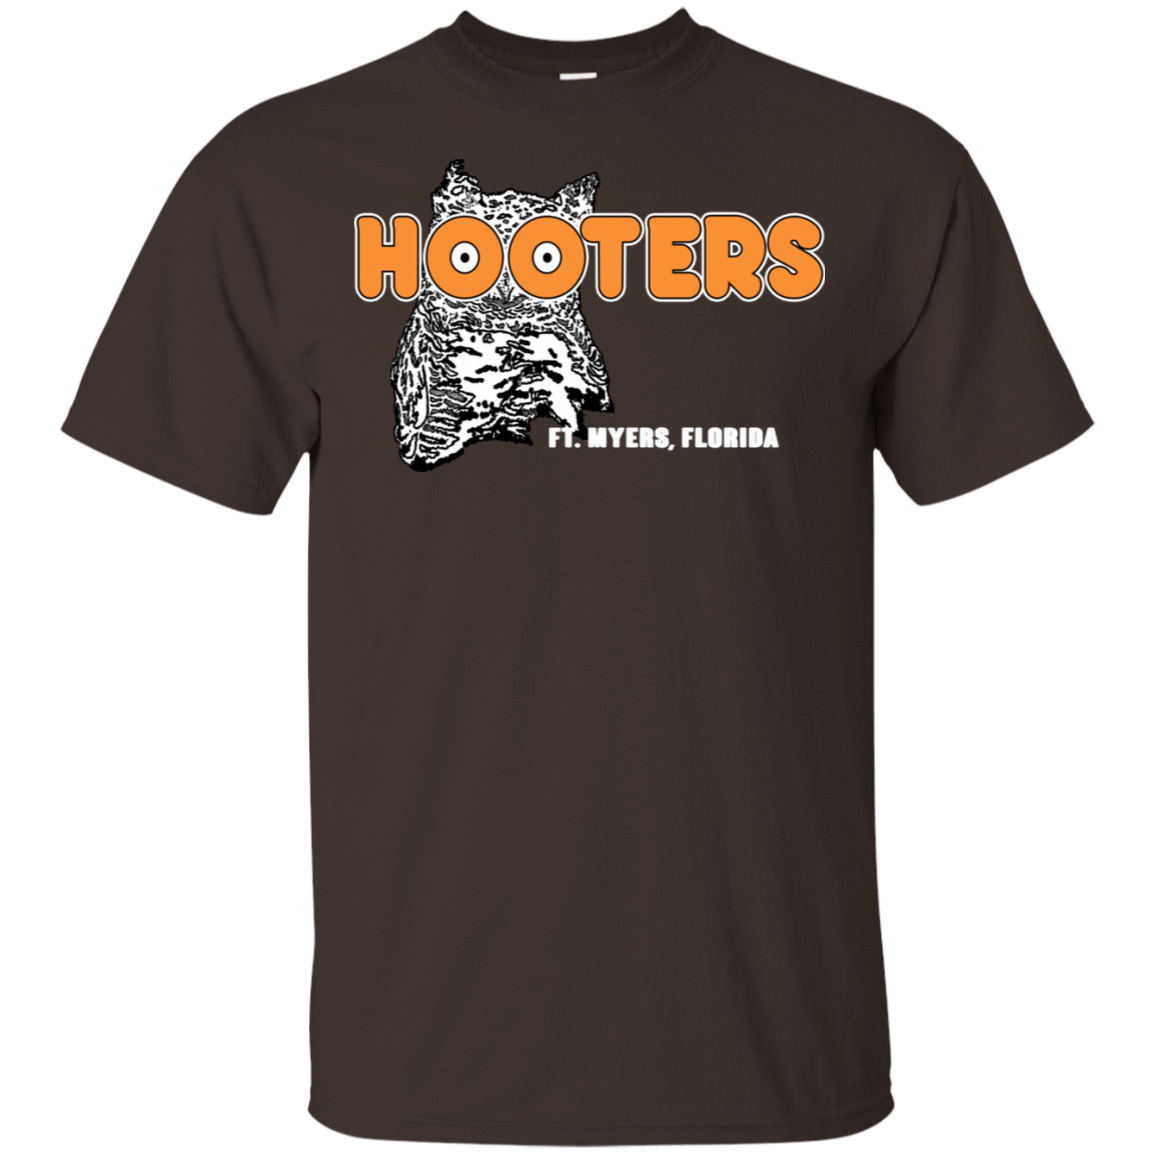 Hooters T-Shirts Fort Myers, Florida 22-2283-73155974-12087 - Tee Ript